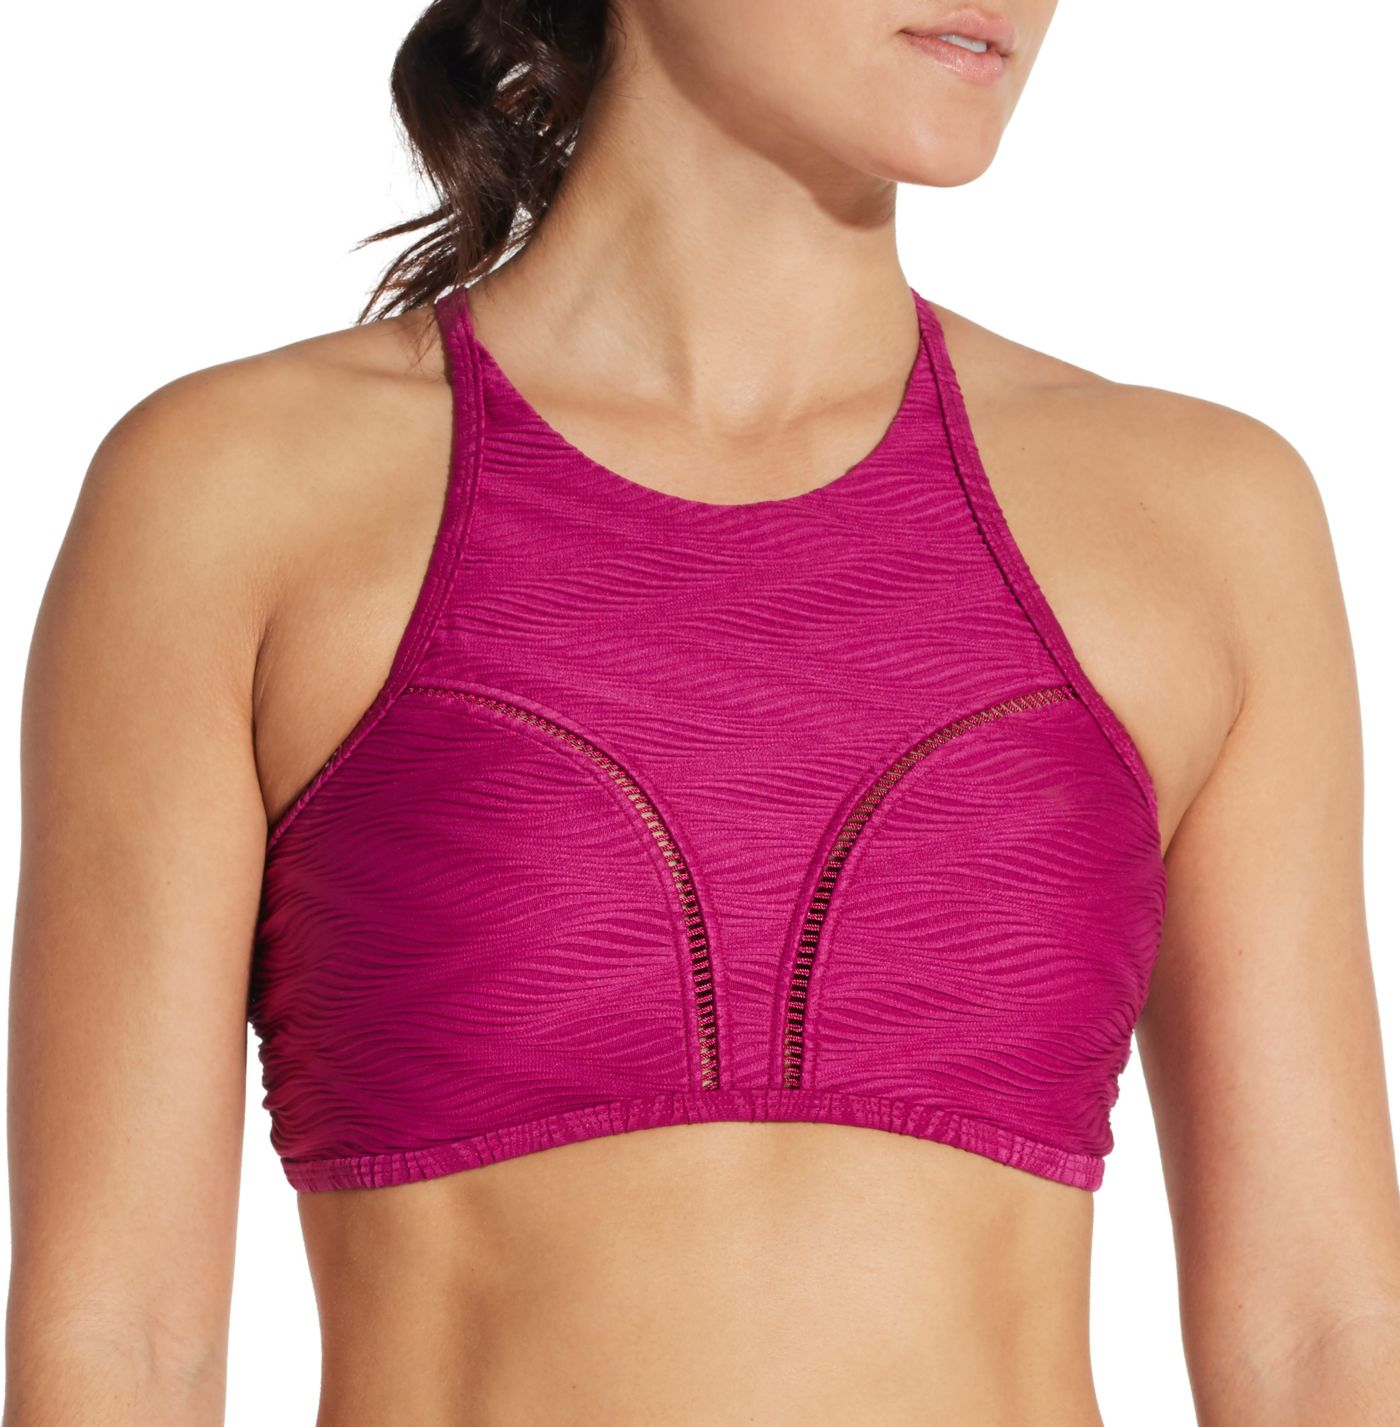 CALIA by Carrie Underwood Women's High Neck Ladder Trim Swim Top